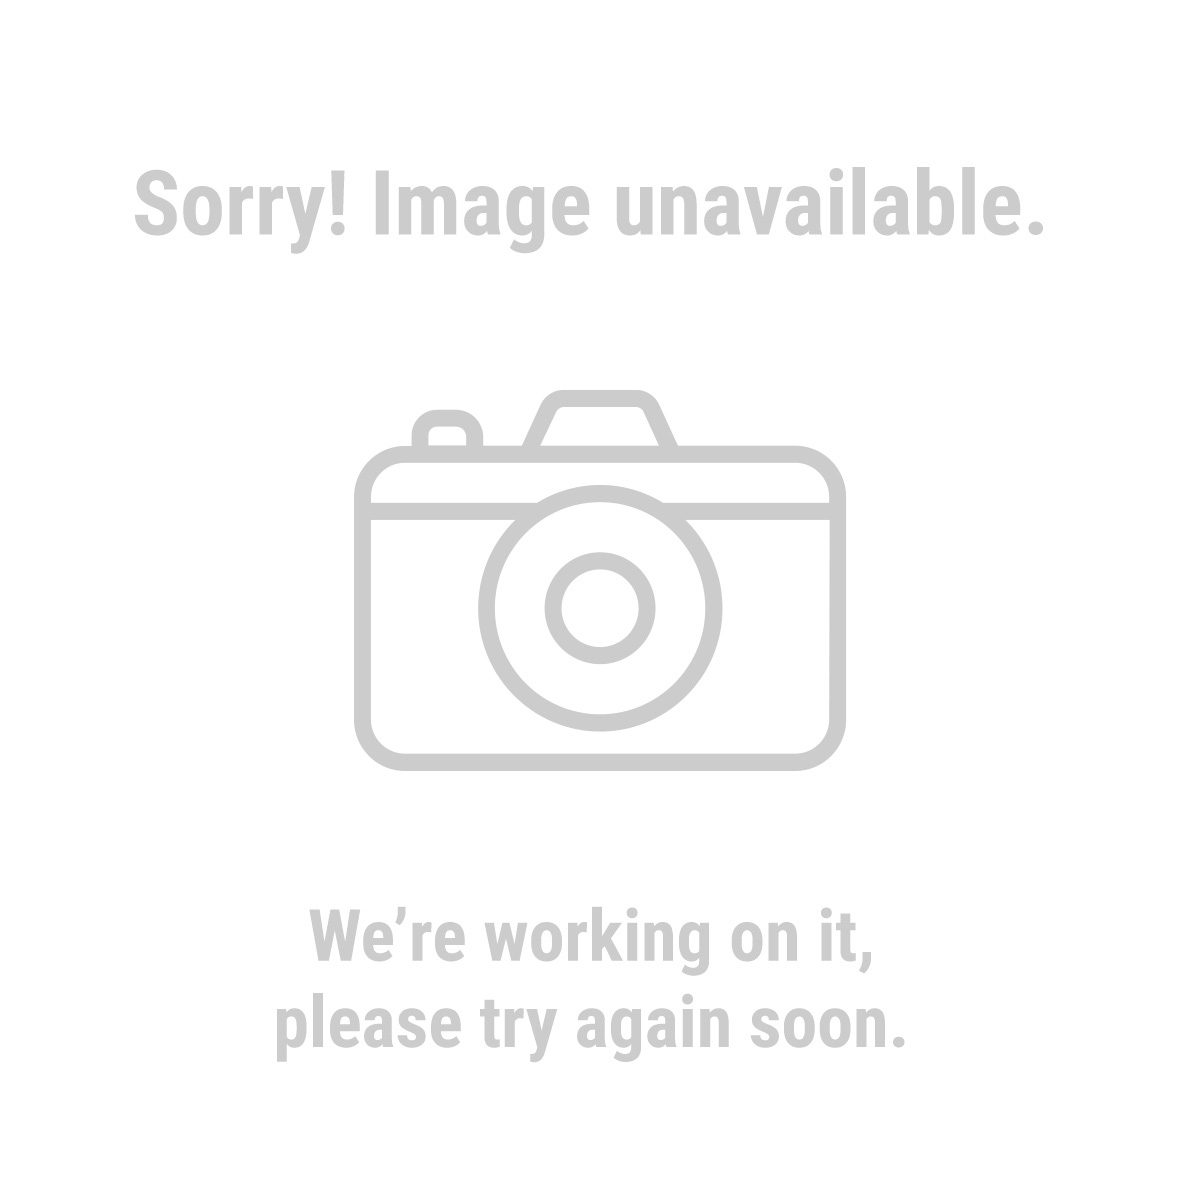 ShelterLogic 68772 10 ft. x 20 ft. AutoShelter® Portable Garage